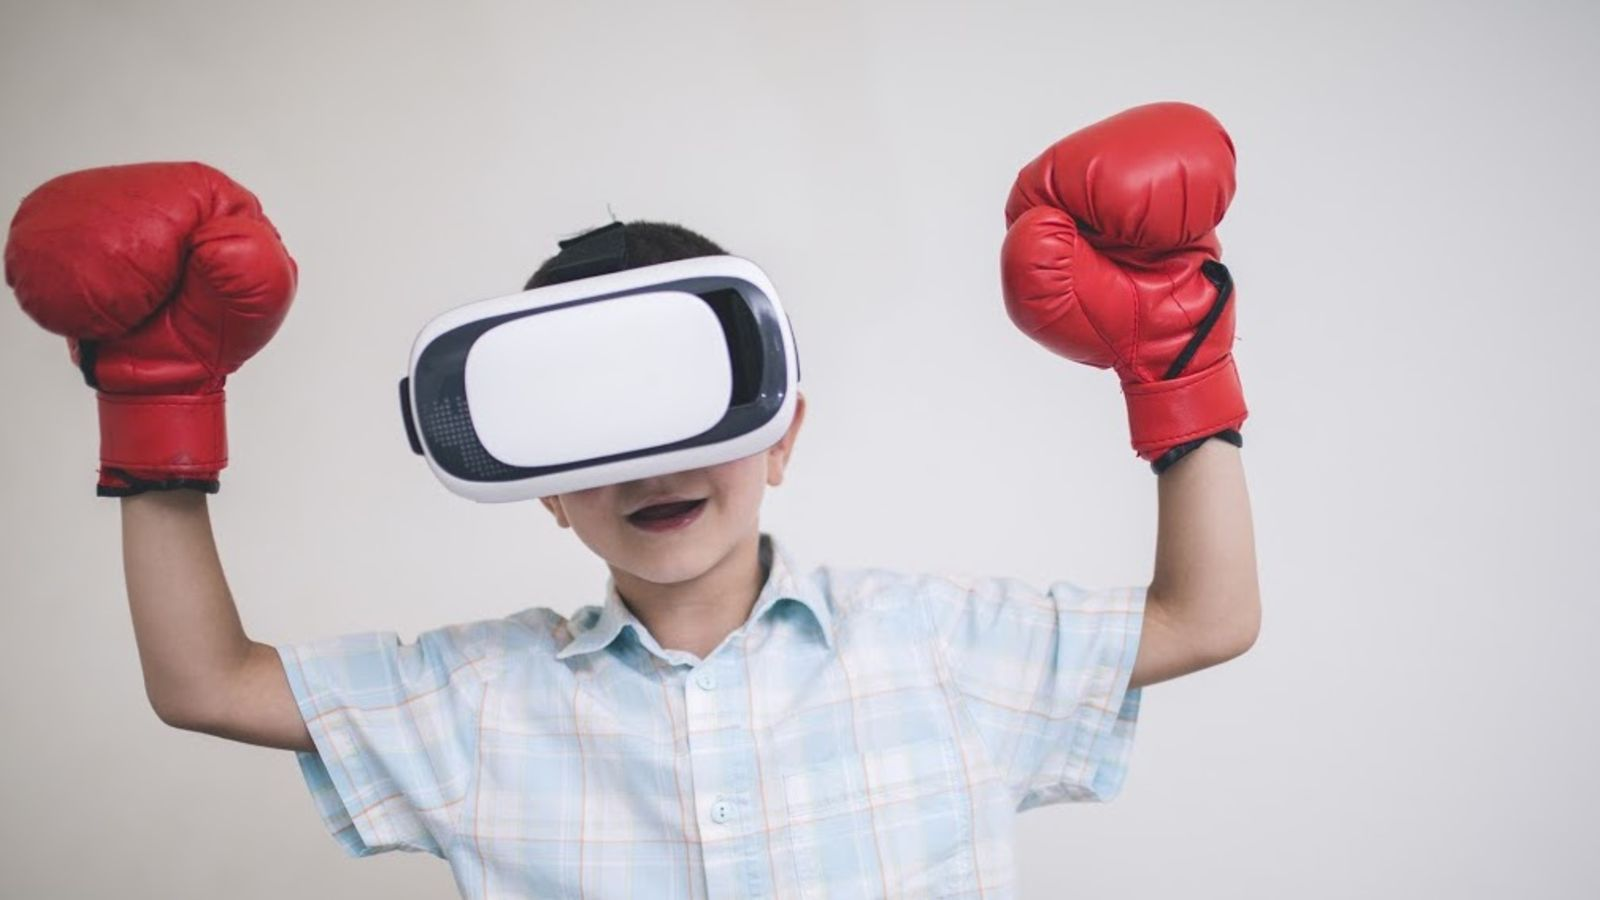 Image of a young boy playing a virtual reality game.